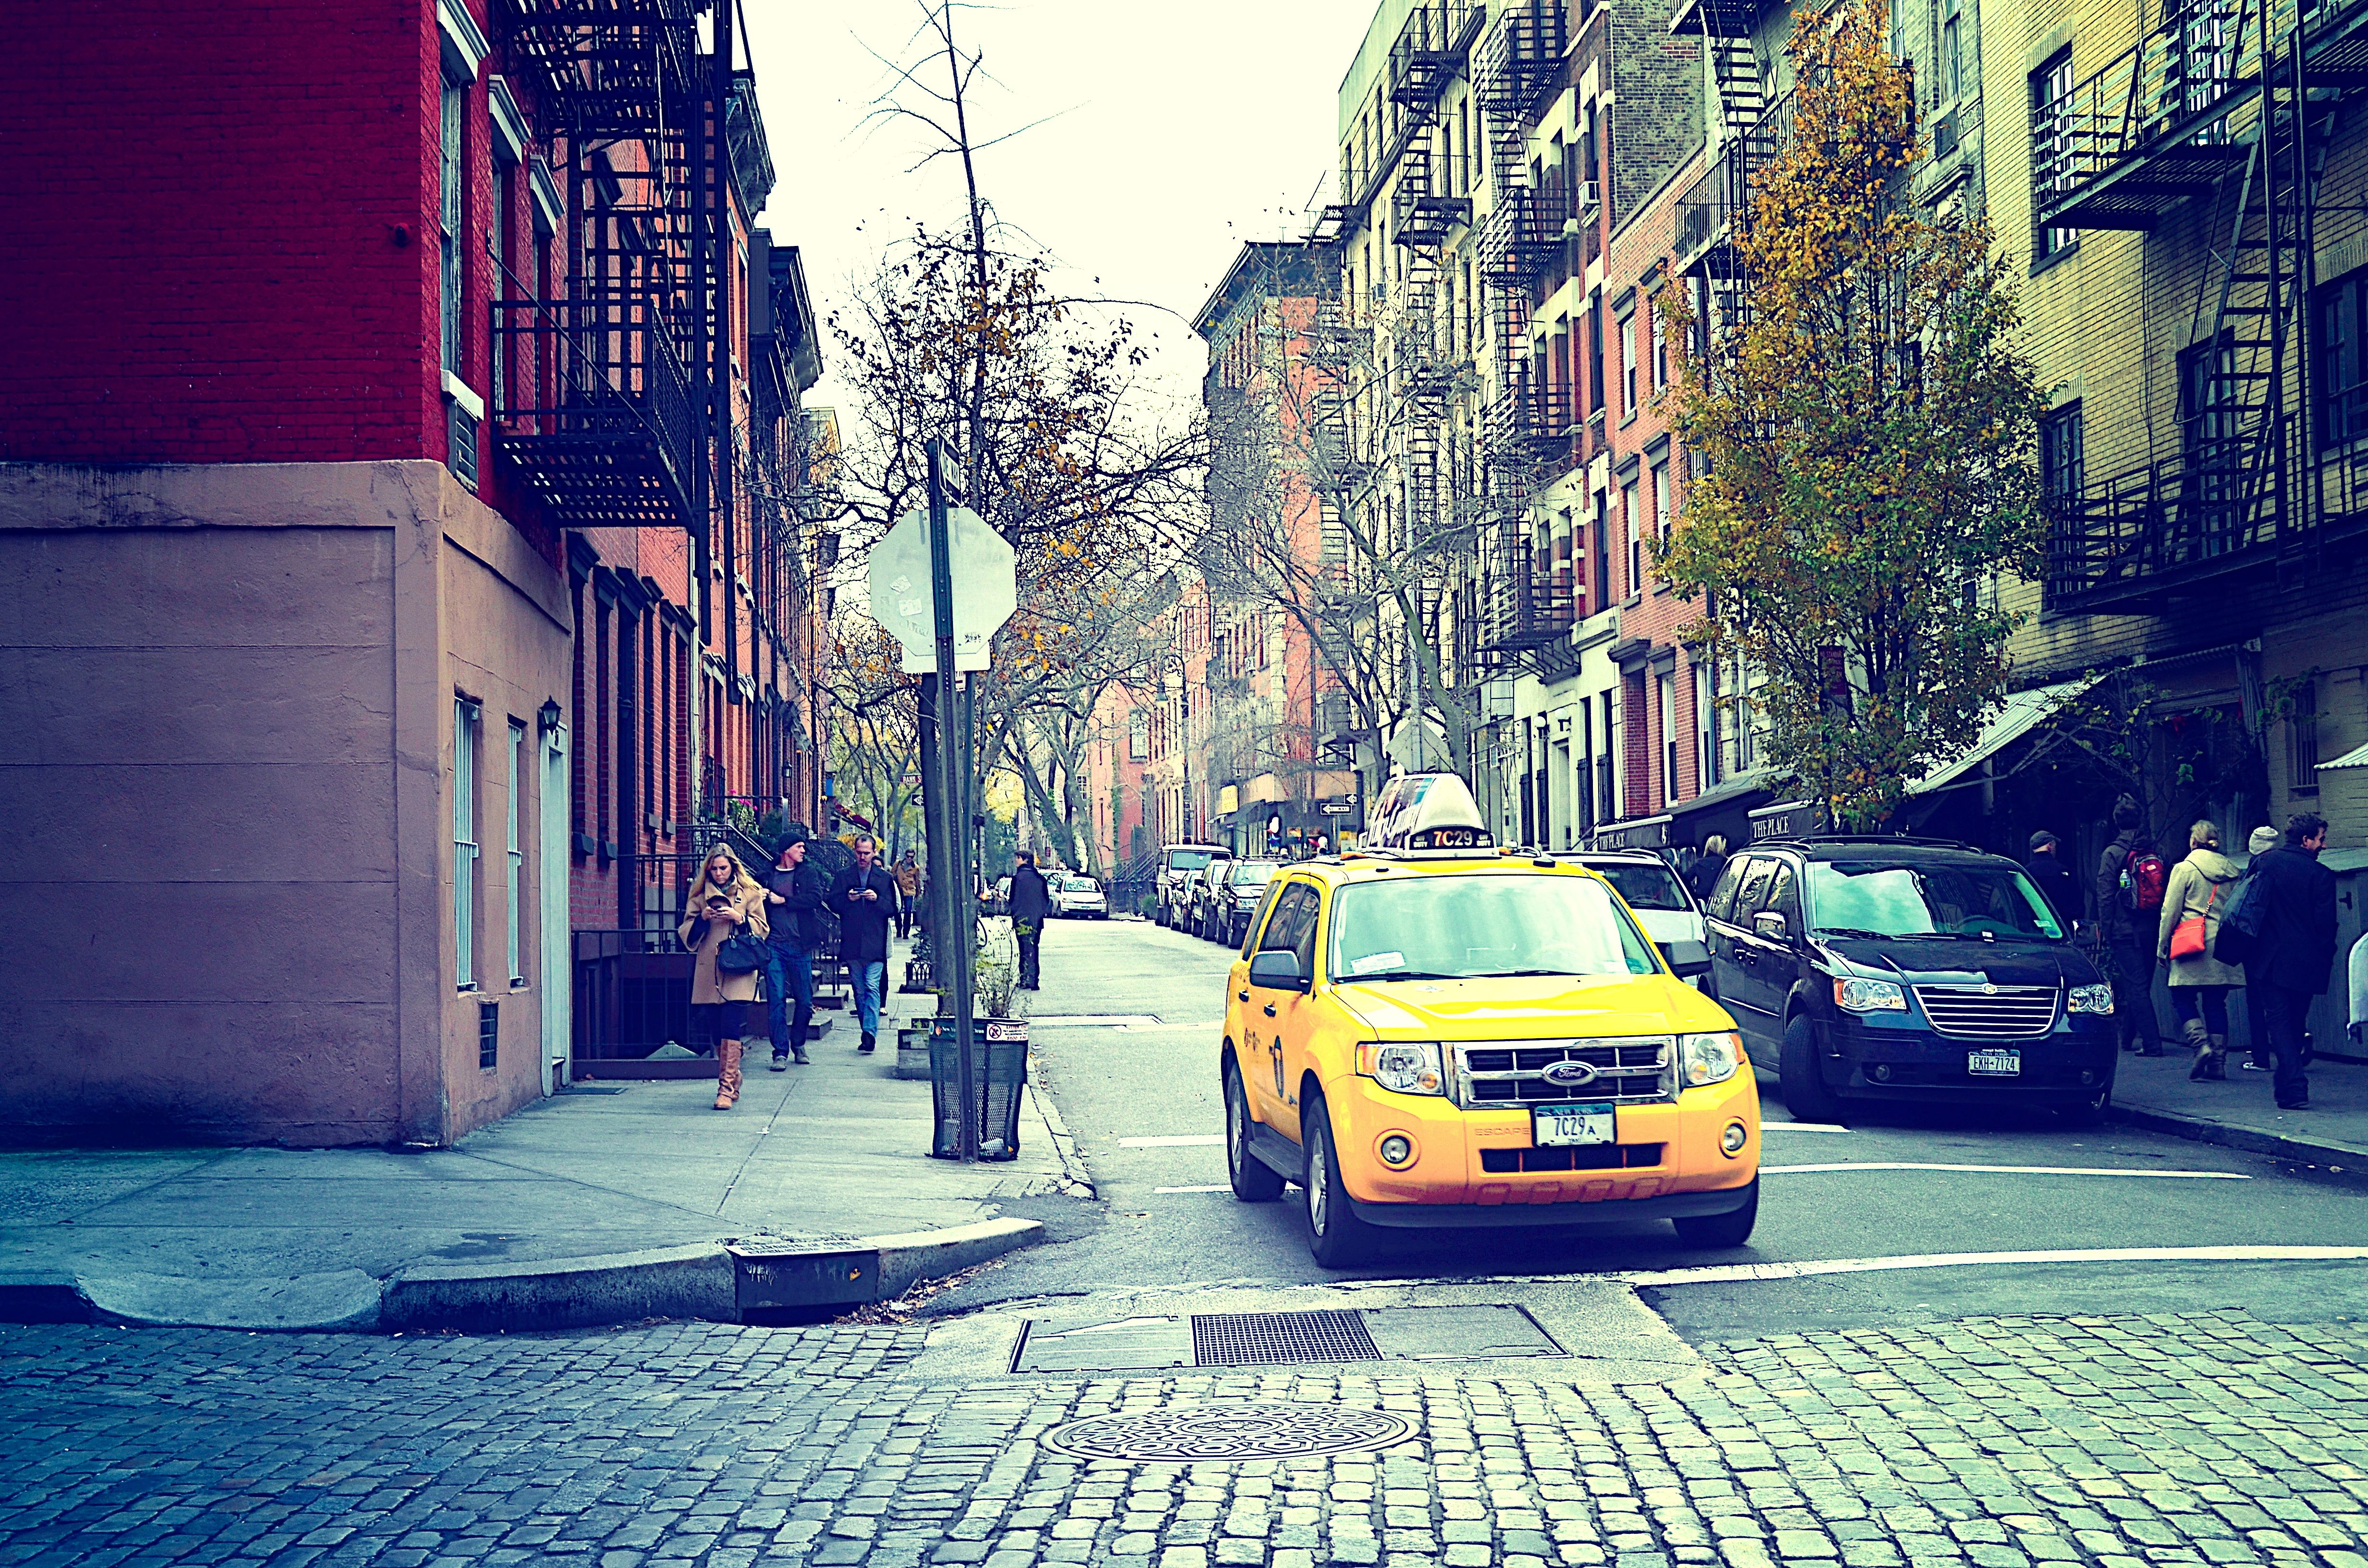 nyc street photography - Google Search | City Scenes ...